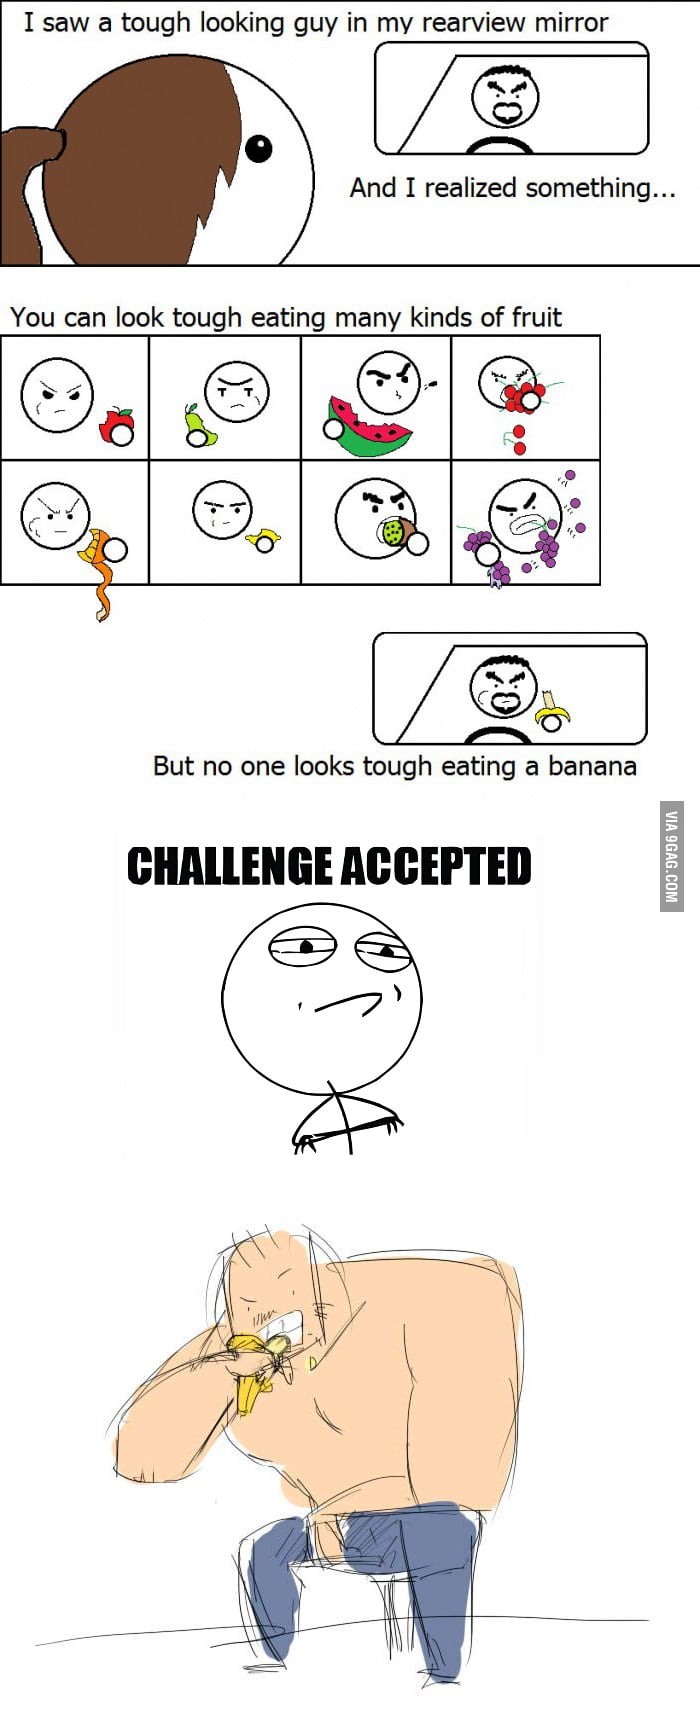 Challenge Accepted - Tough guy eating Banana drawn by my malaysian designer friend Yuki.